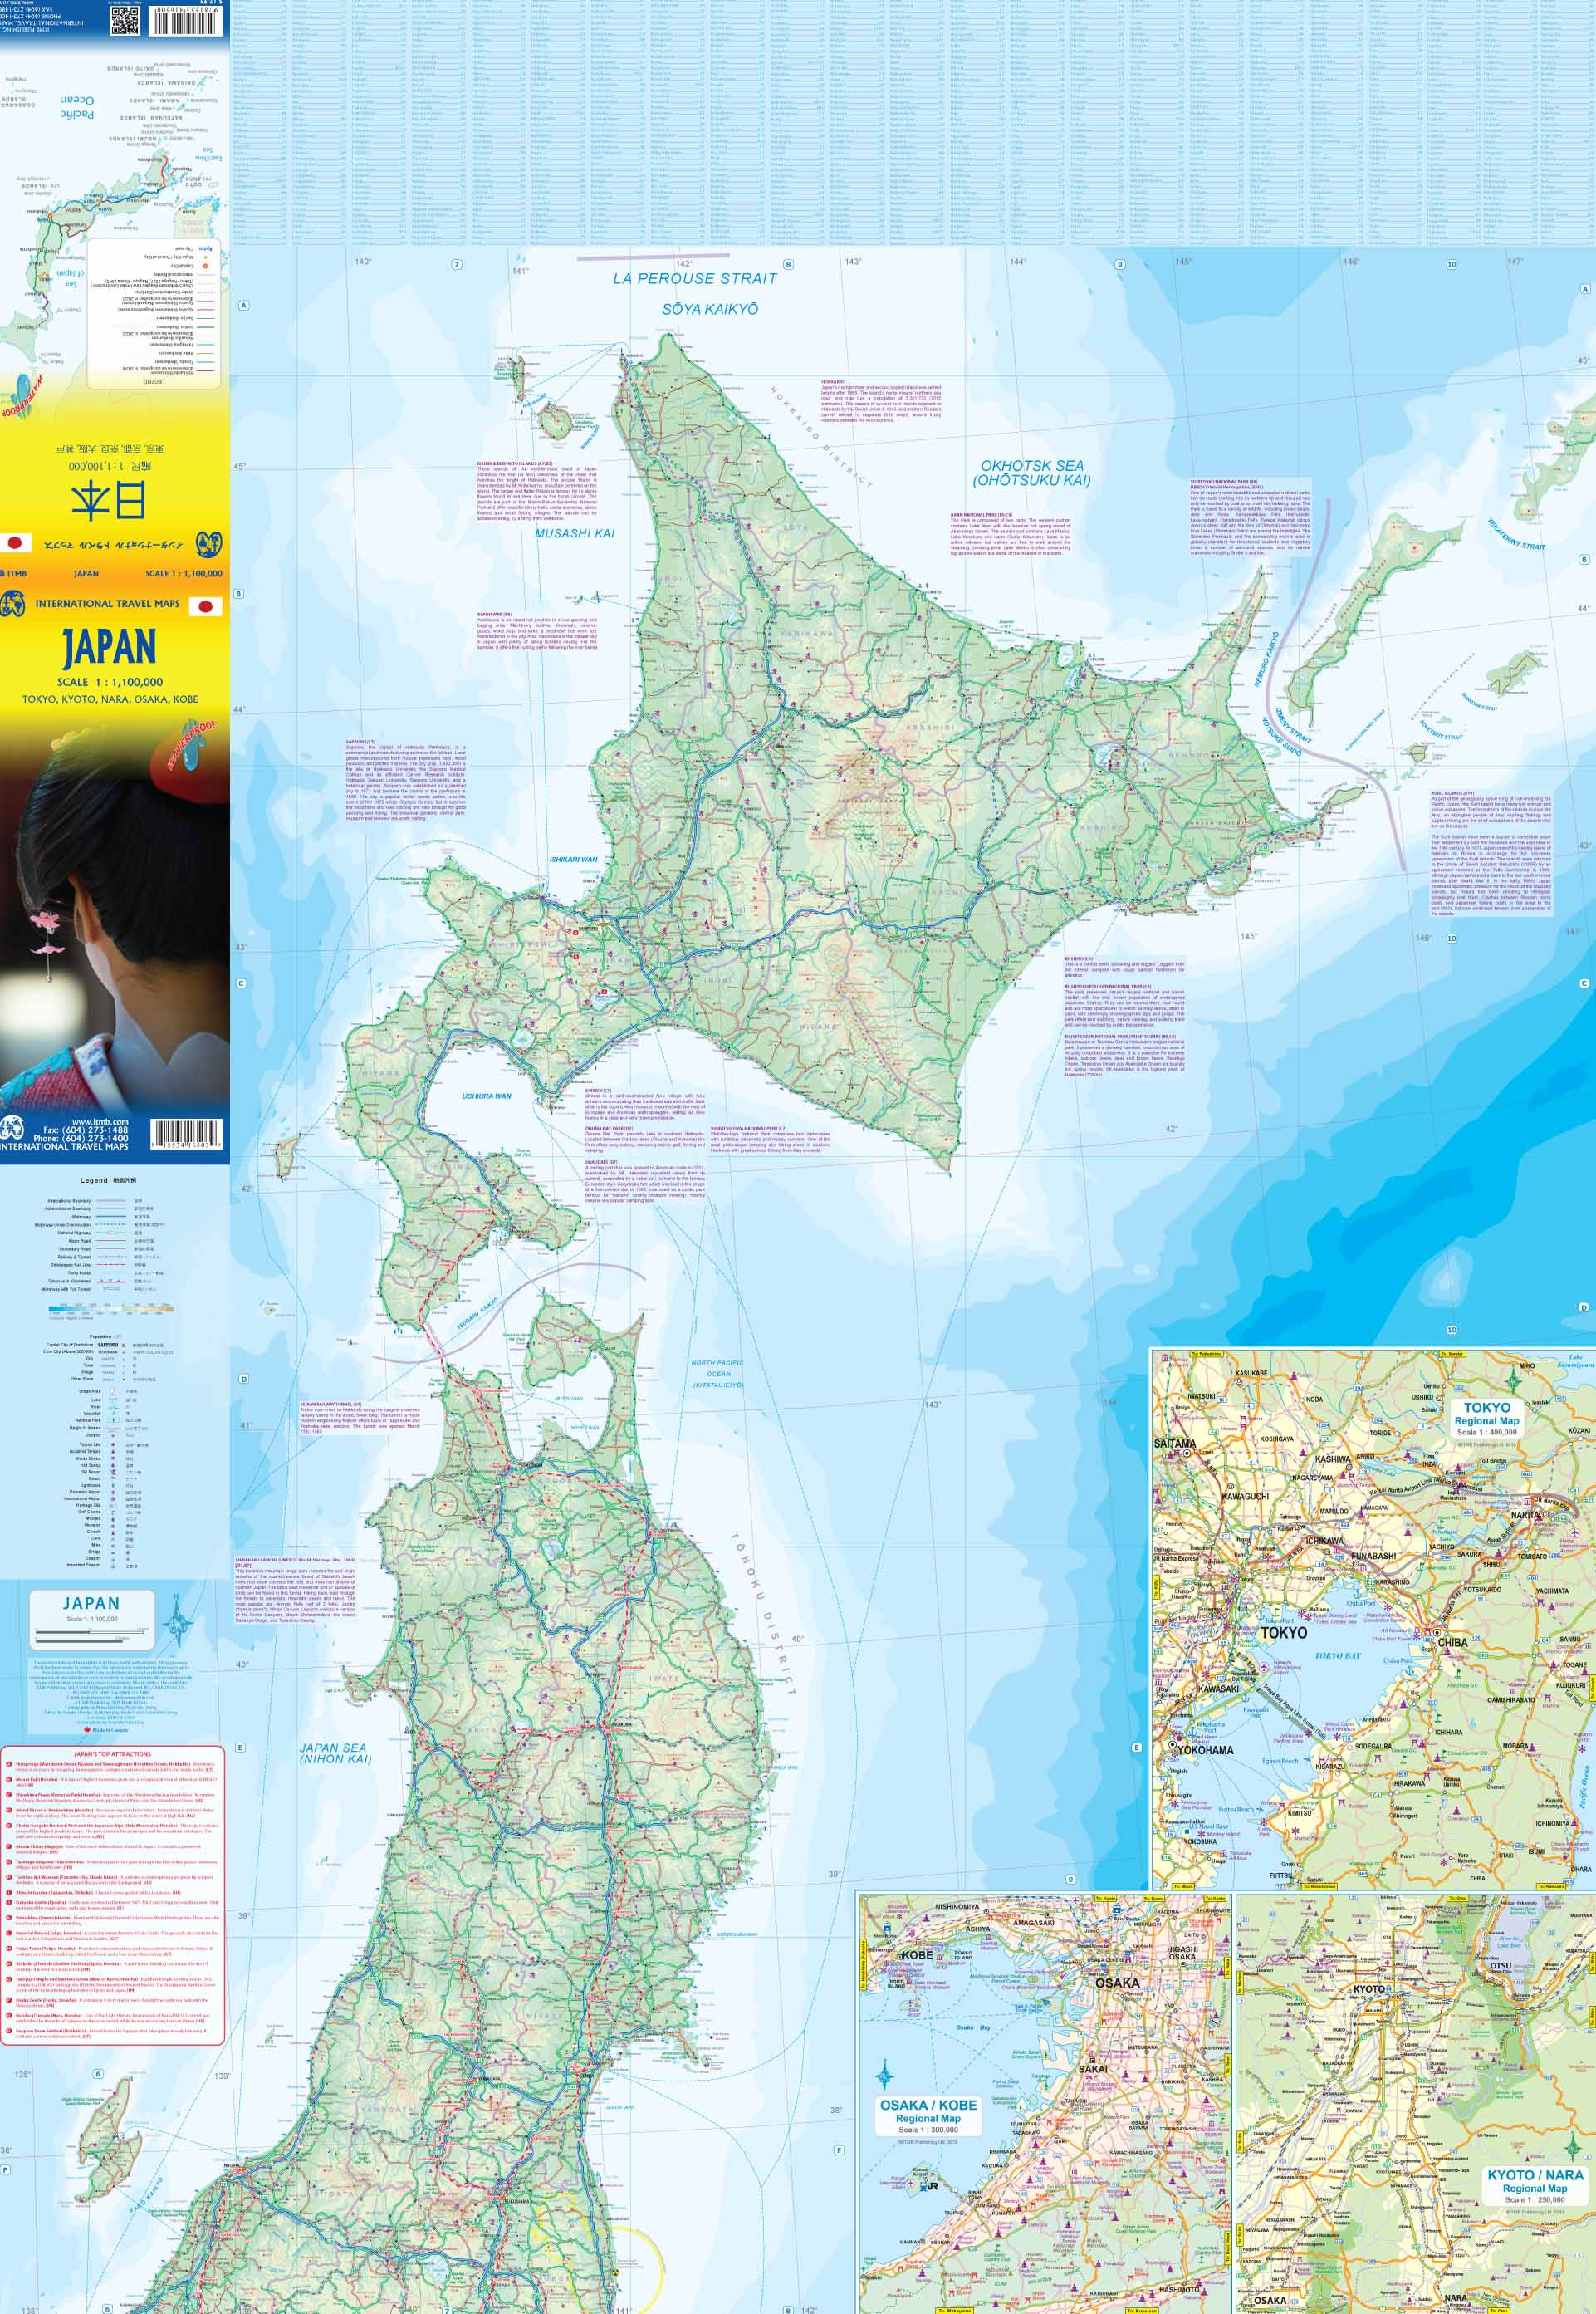 Maps For Travel City Maps Road Maps Guides Globes Topographic - Japan map road